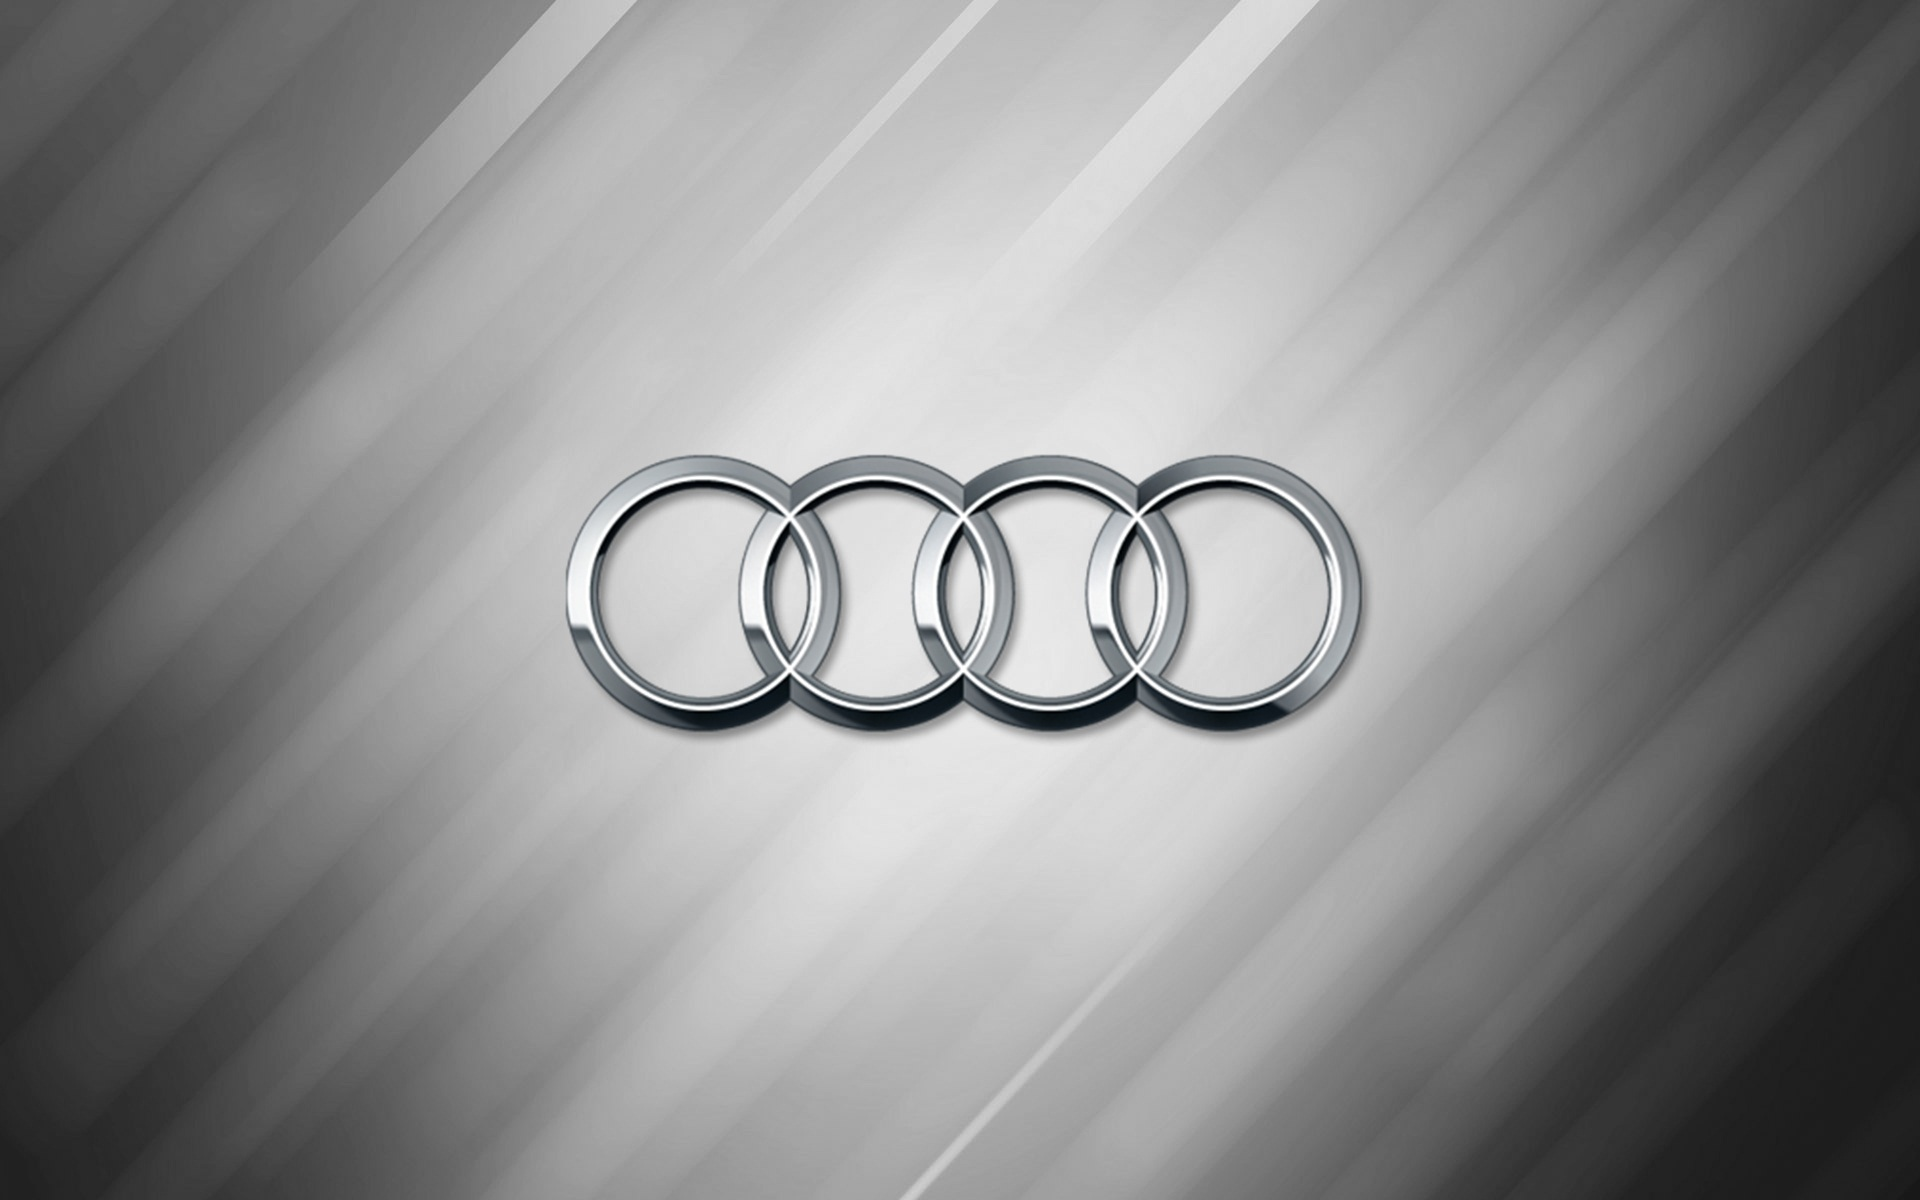 S4 Wallpaper Hd Audi Logo Wallpapers Pictures Images